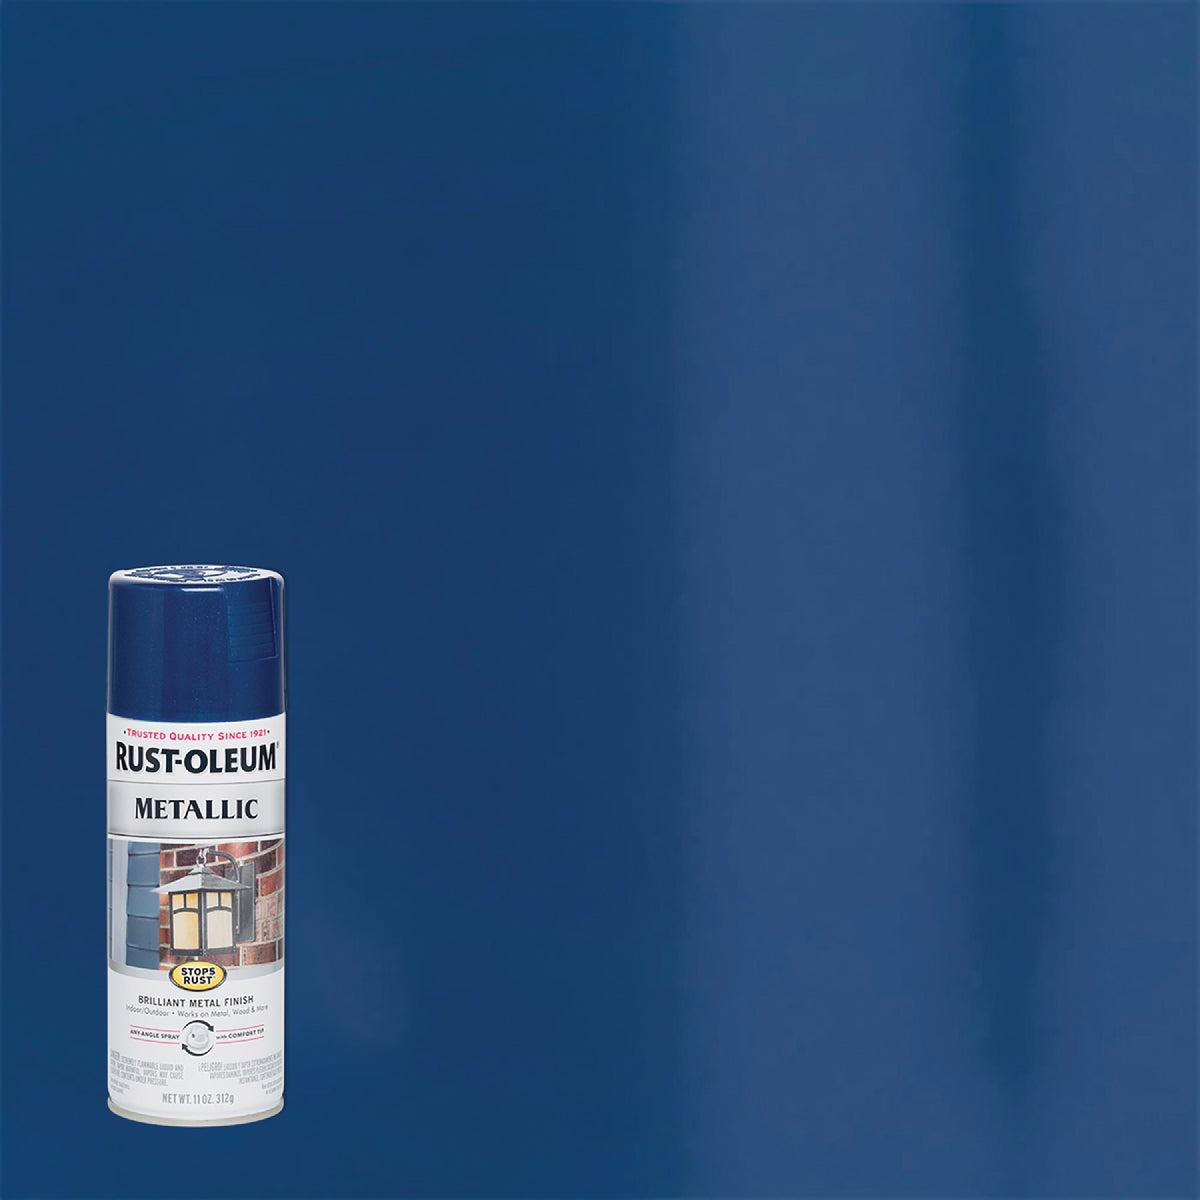 COBALT MTLC SPRAY PAINT - 7251-830 by Rustoleum